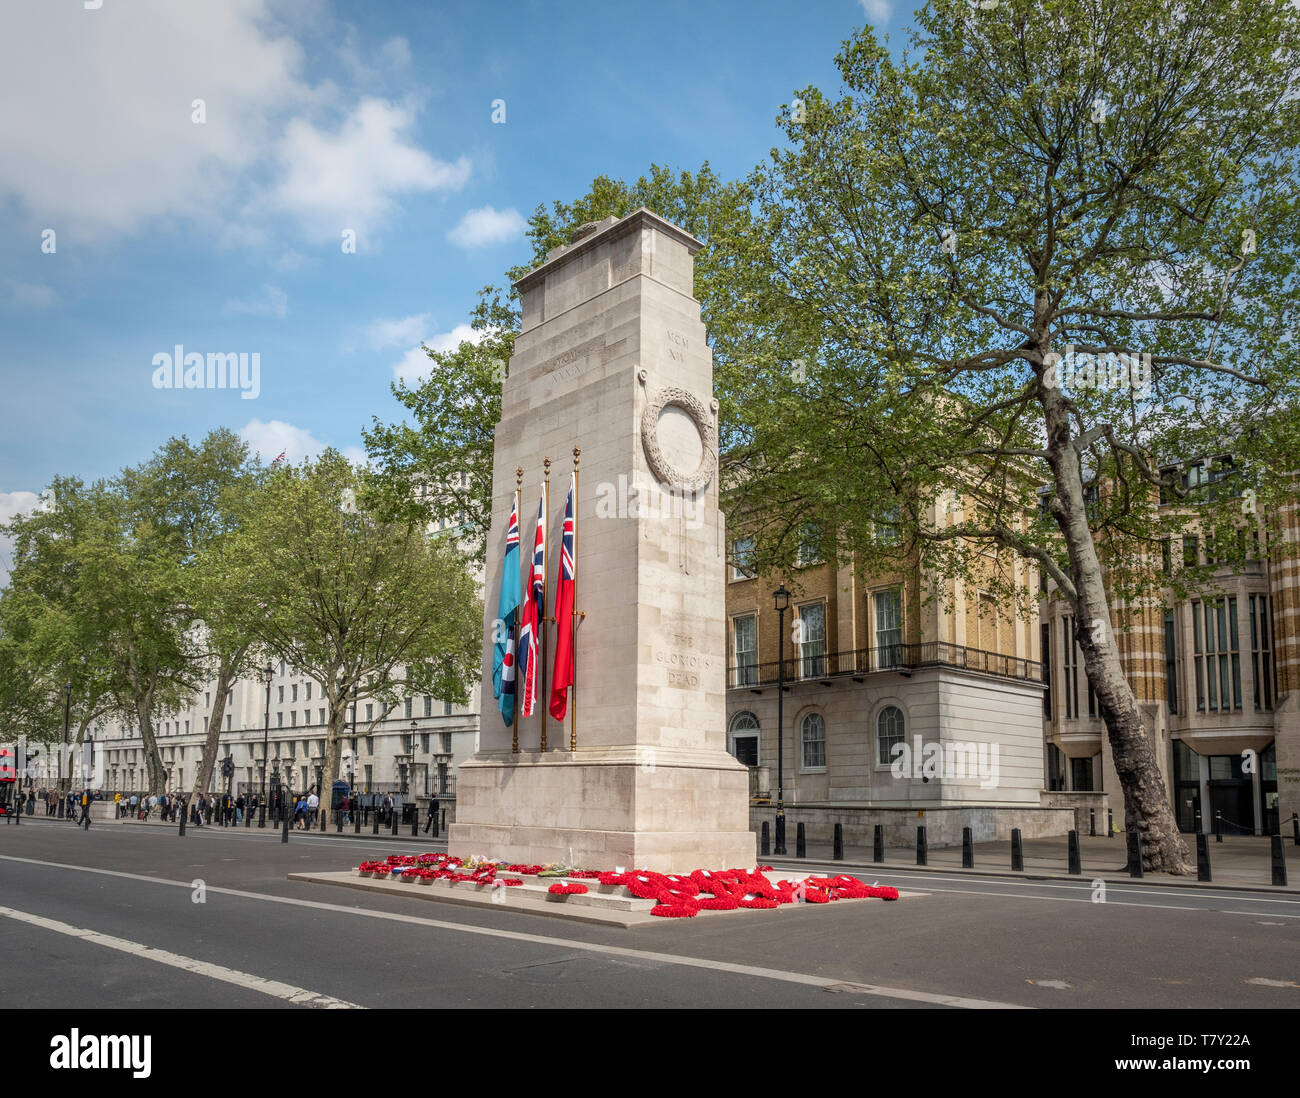 The Cenotaph war memorial designed by  Edwin Lutyens, Whitehall, London, UK. - Stock Image